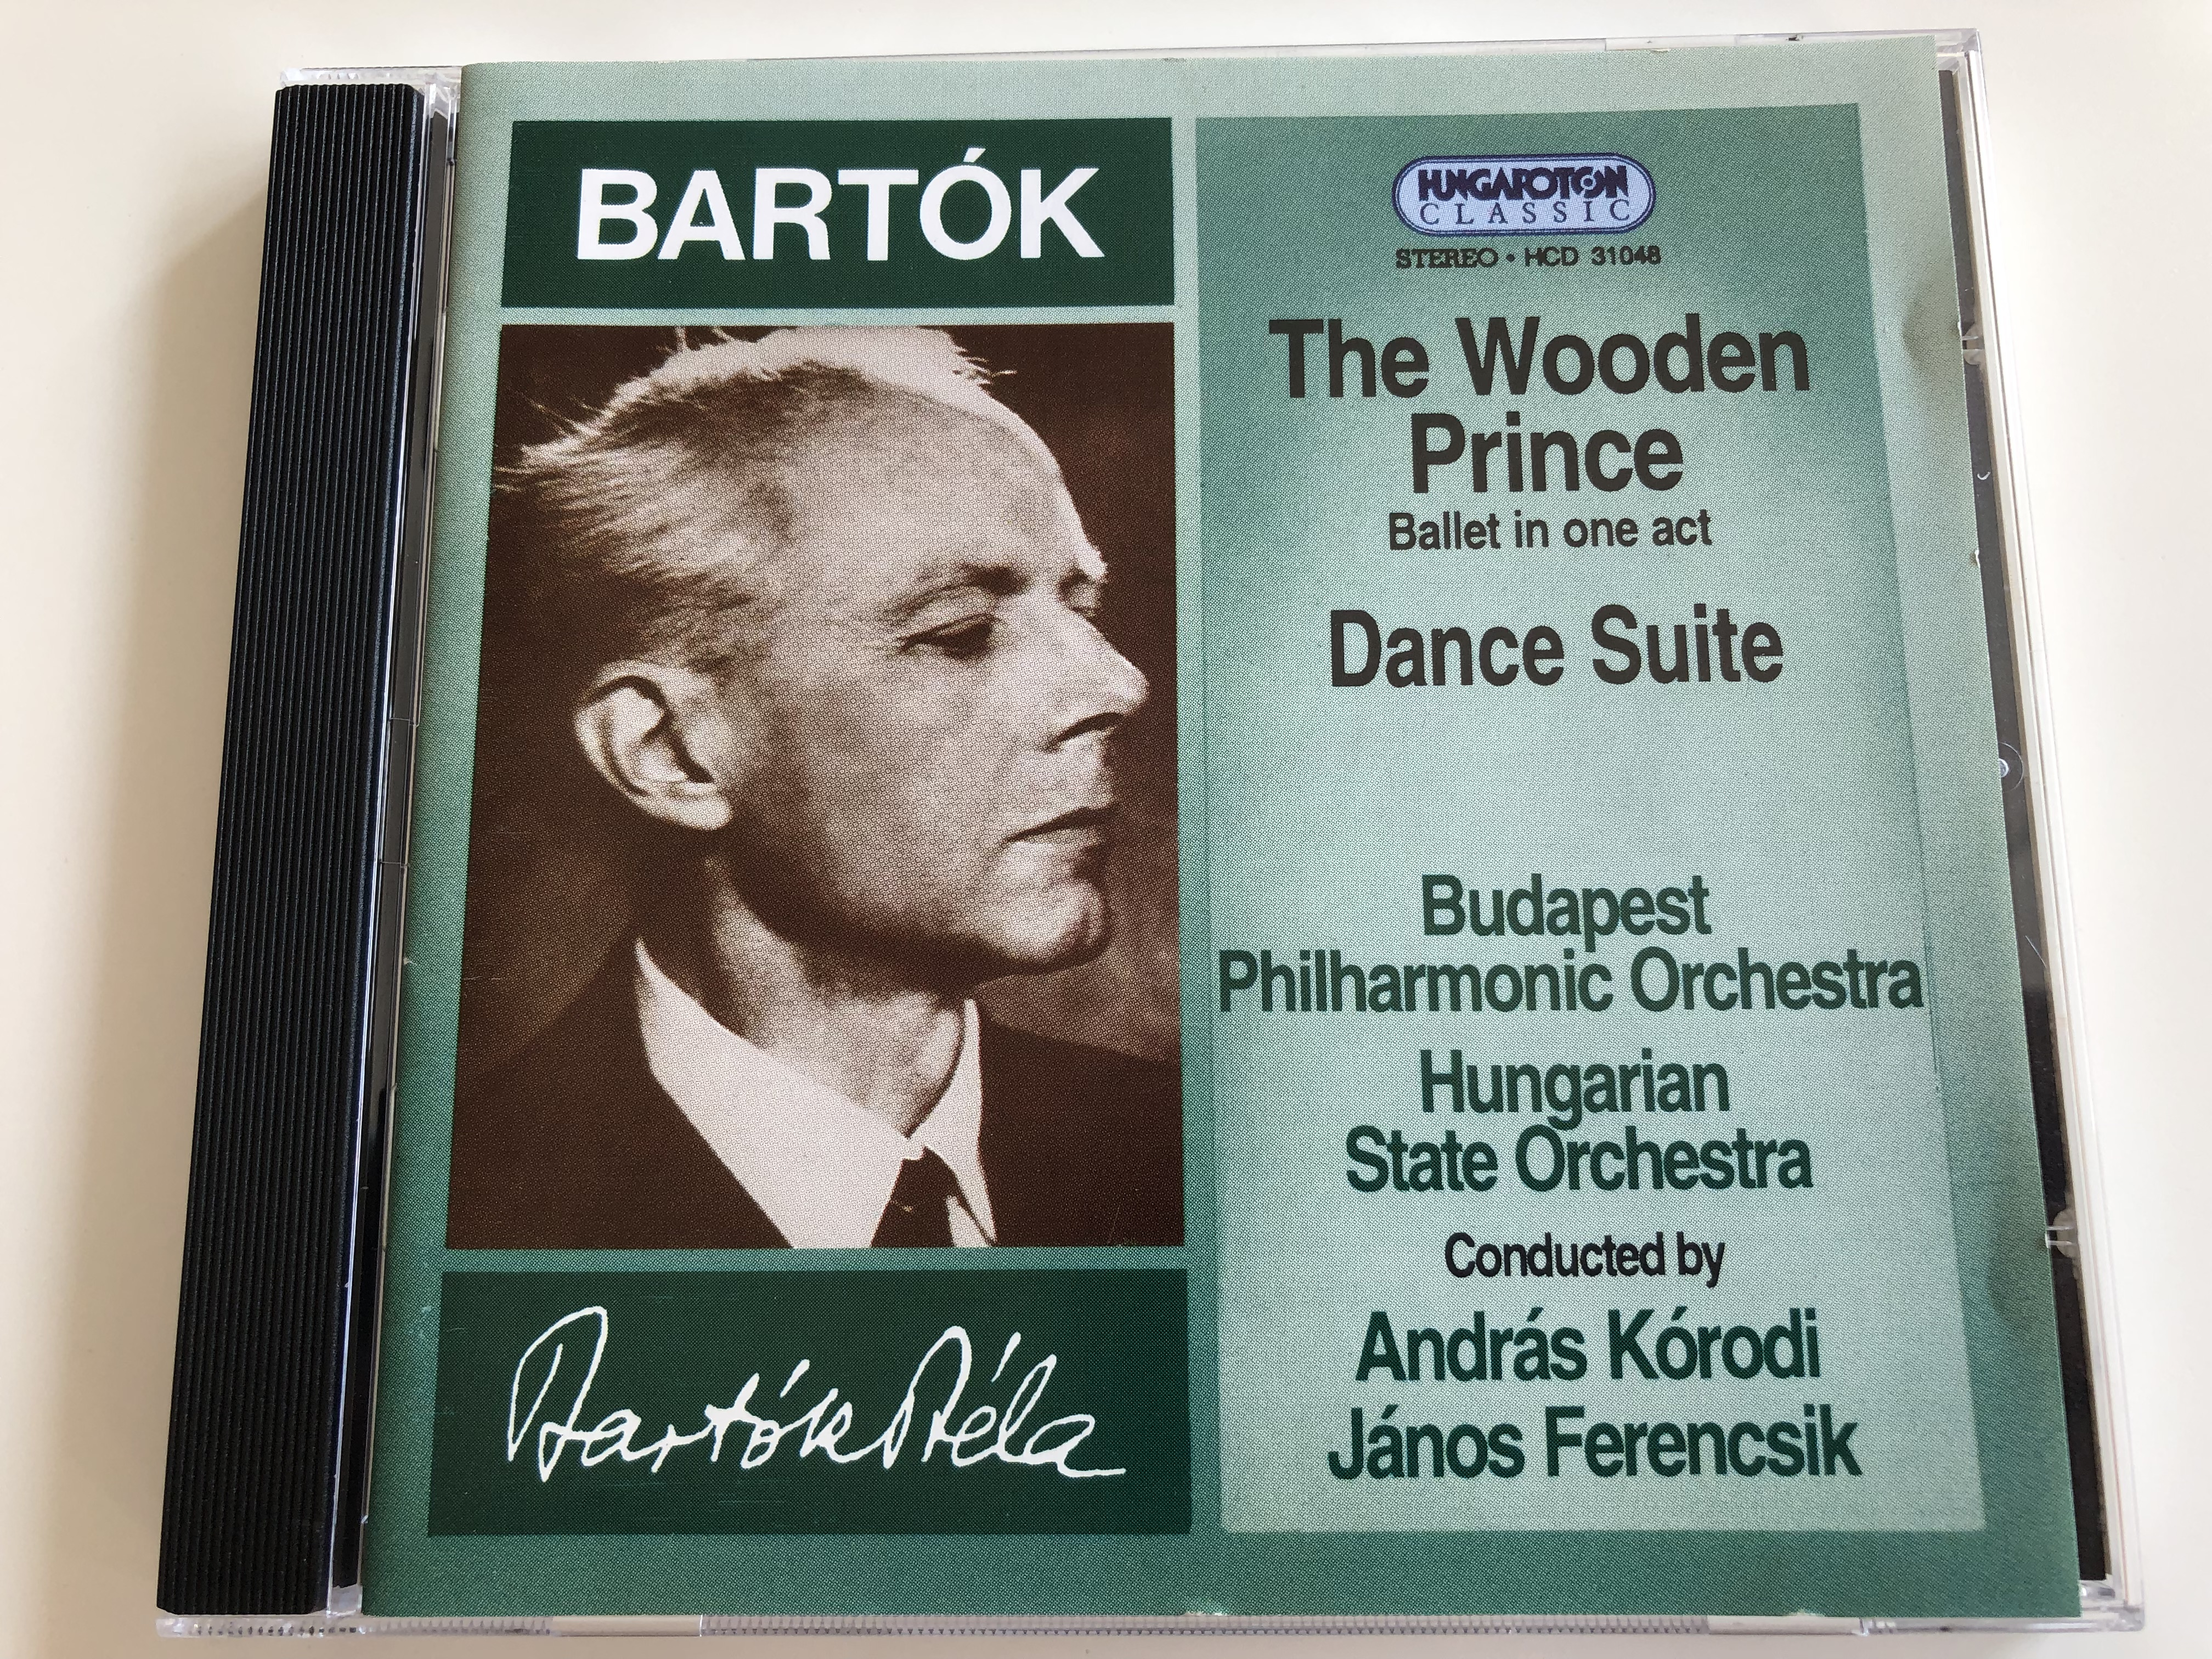 bart-k-the-wooden-prince-ballet-in-one-act-dance-suite-budapest-philharmonic-orchestra-hungarian-state-orchestra-conducted-by-andr-s-k-rodi-j-nos-ferencsik-hungaroton-audio-cd-1994-hcd-31048-1-.jpg